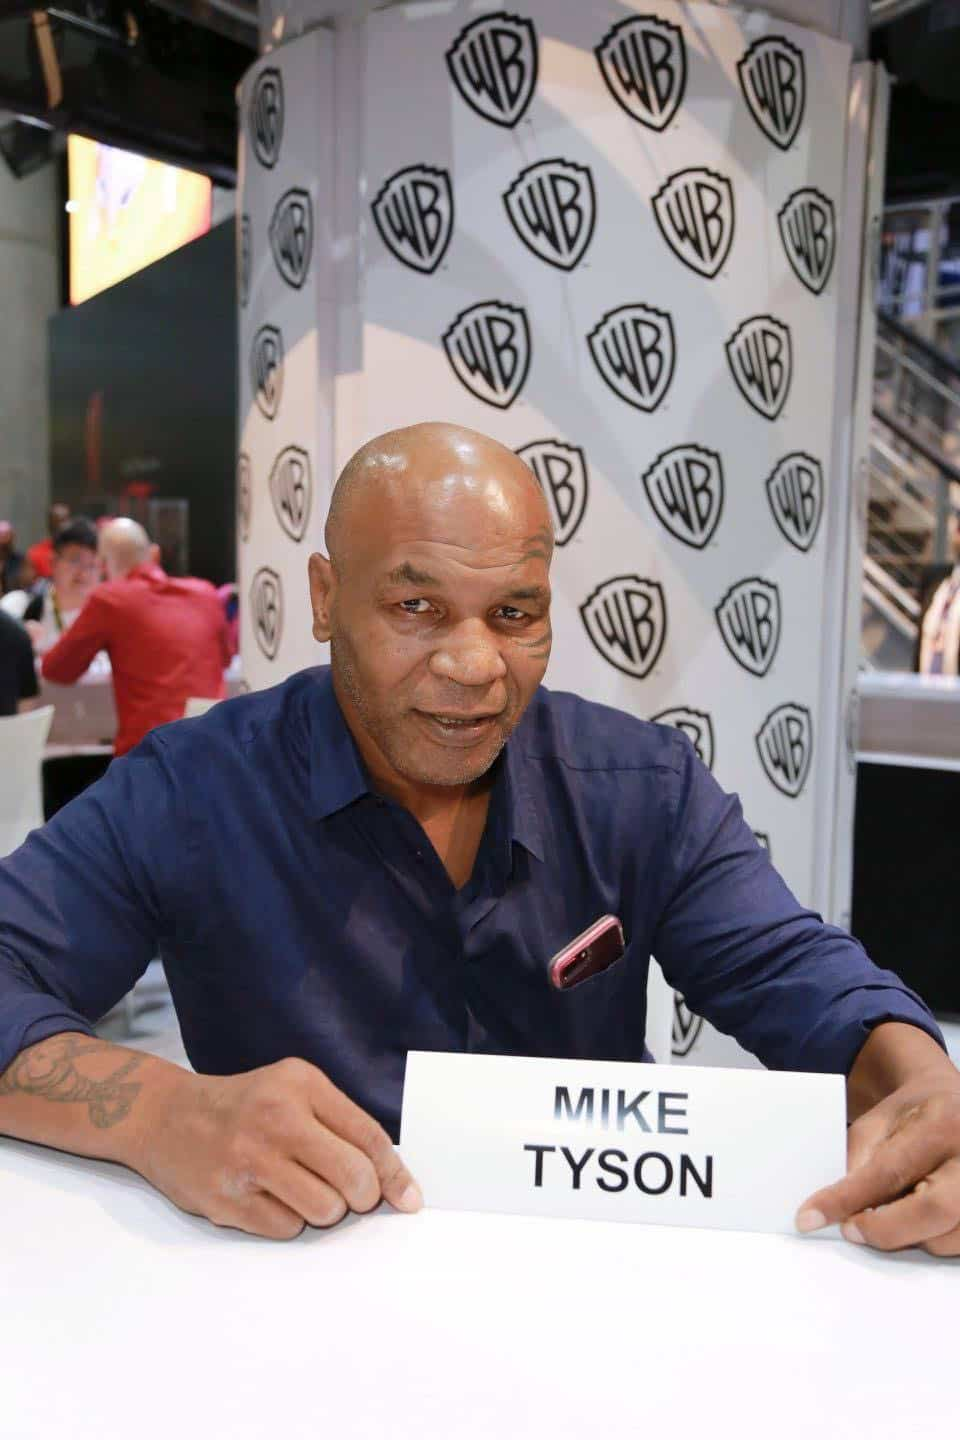 Comic Con MIKE TYSON MYSTERIES Signing 1